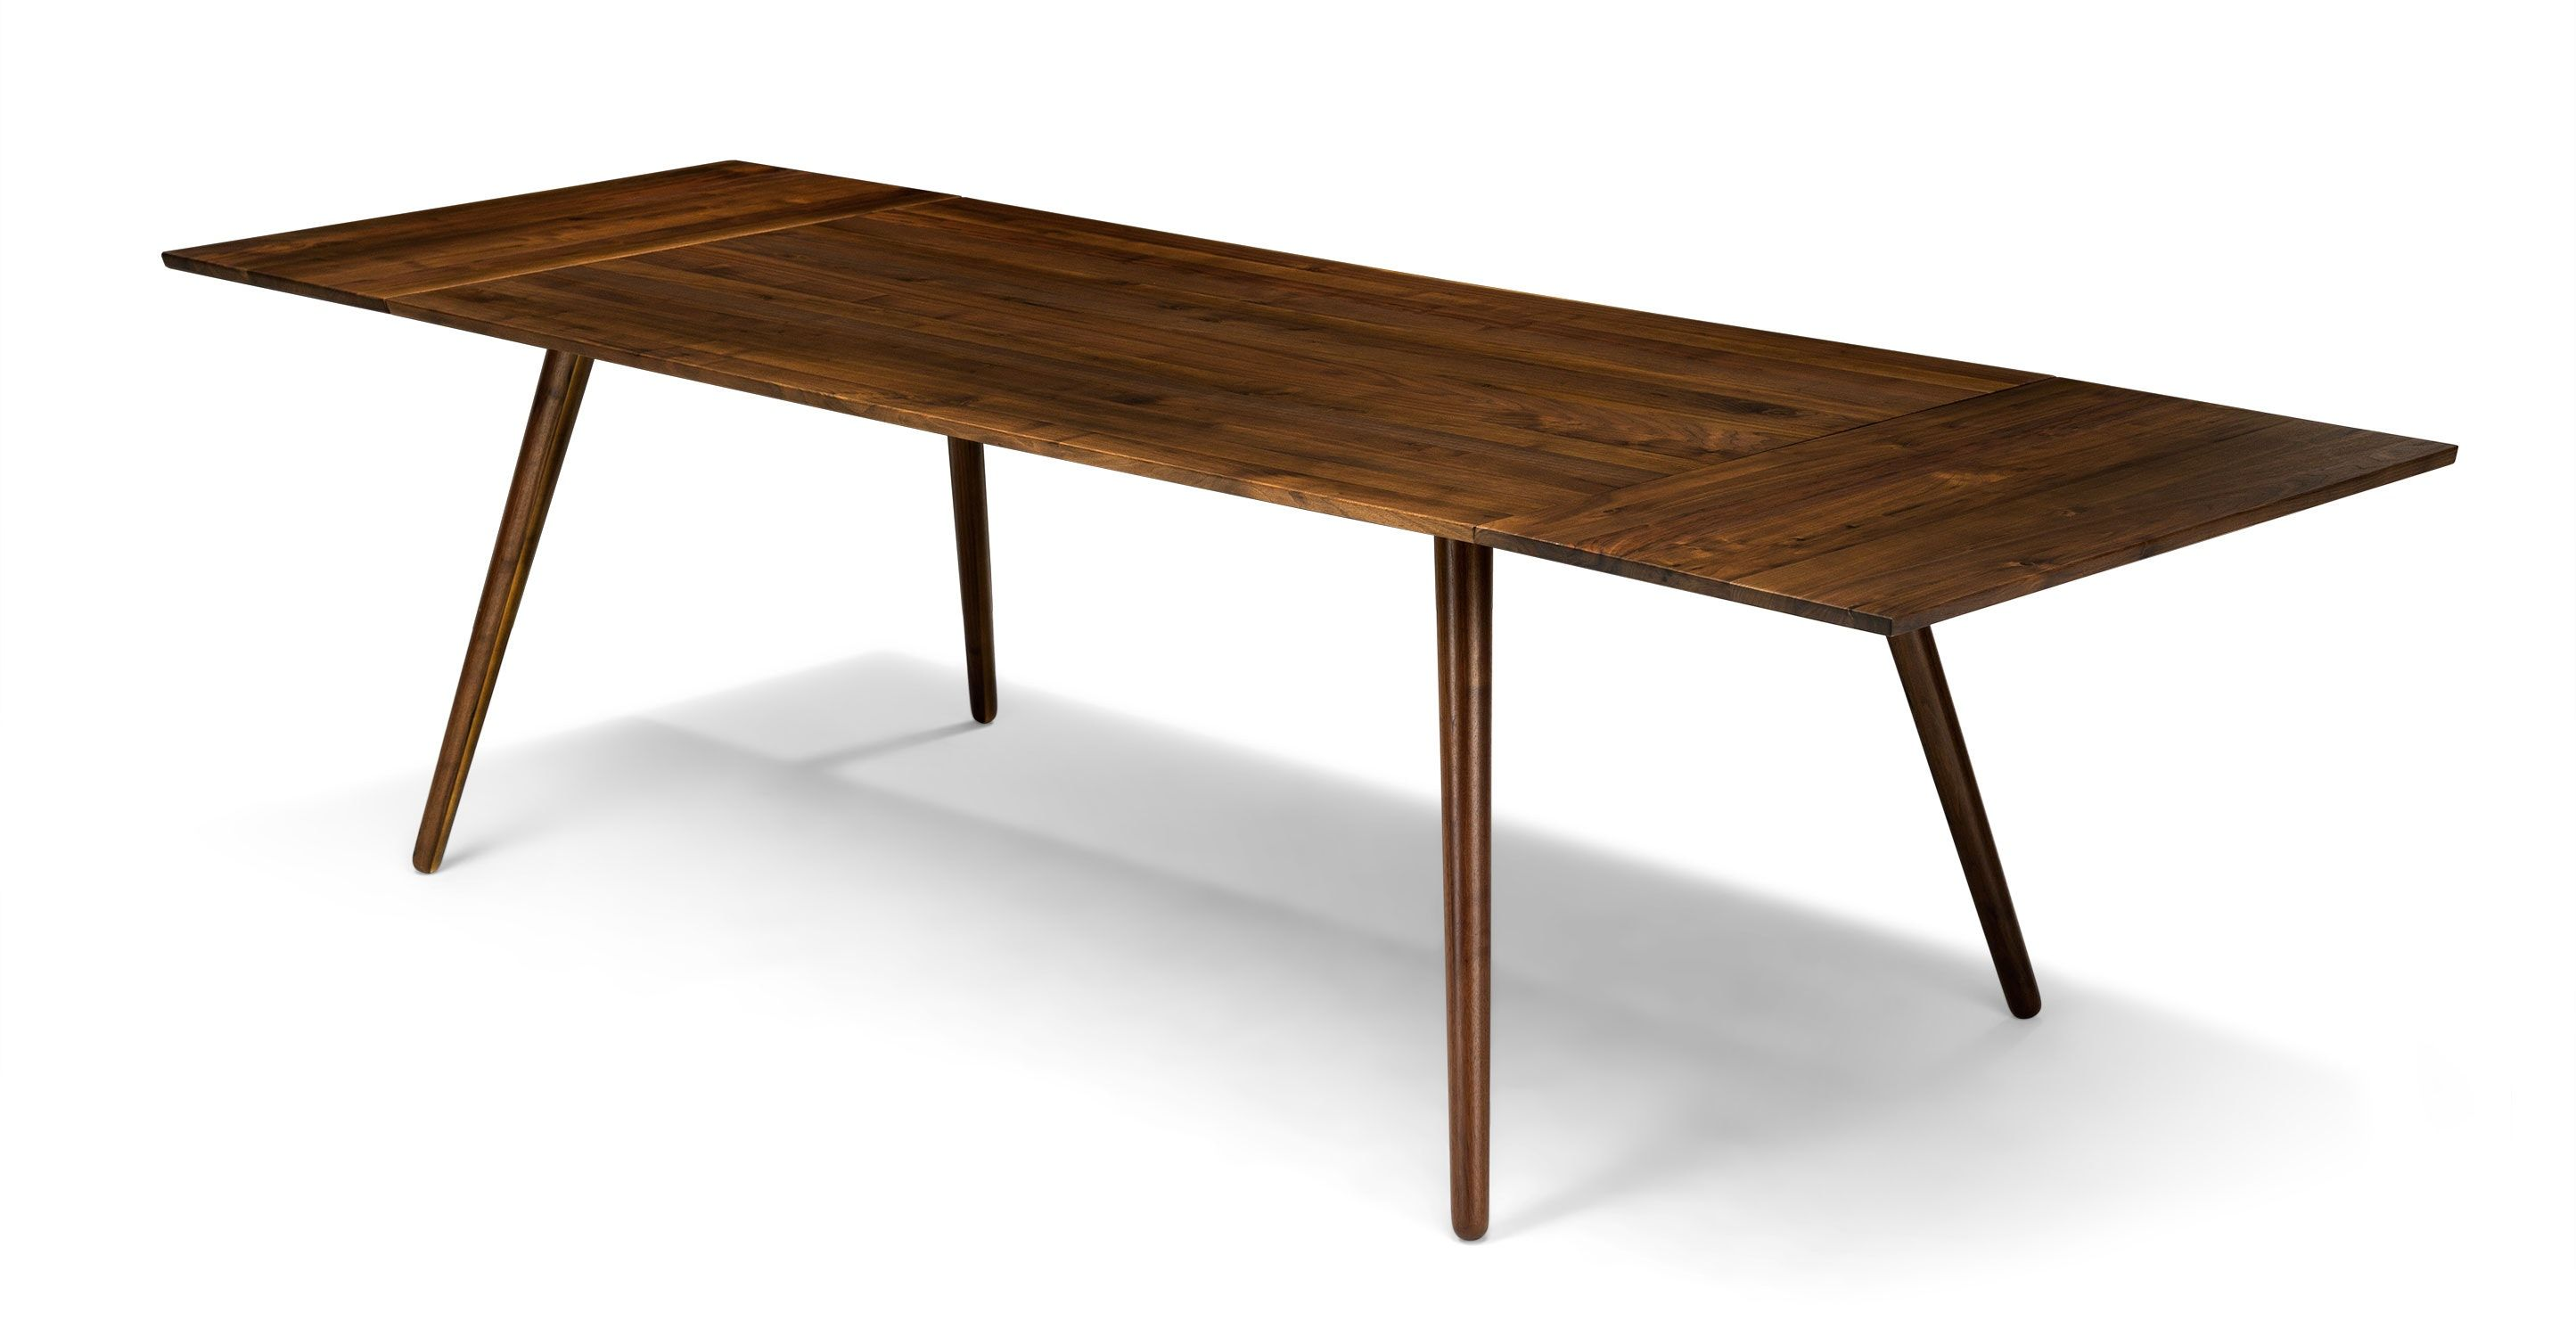 Extendable Dining Table, 12 Person, Walnut Wood